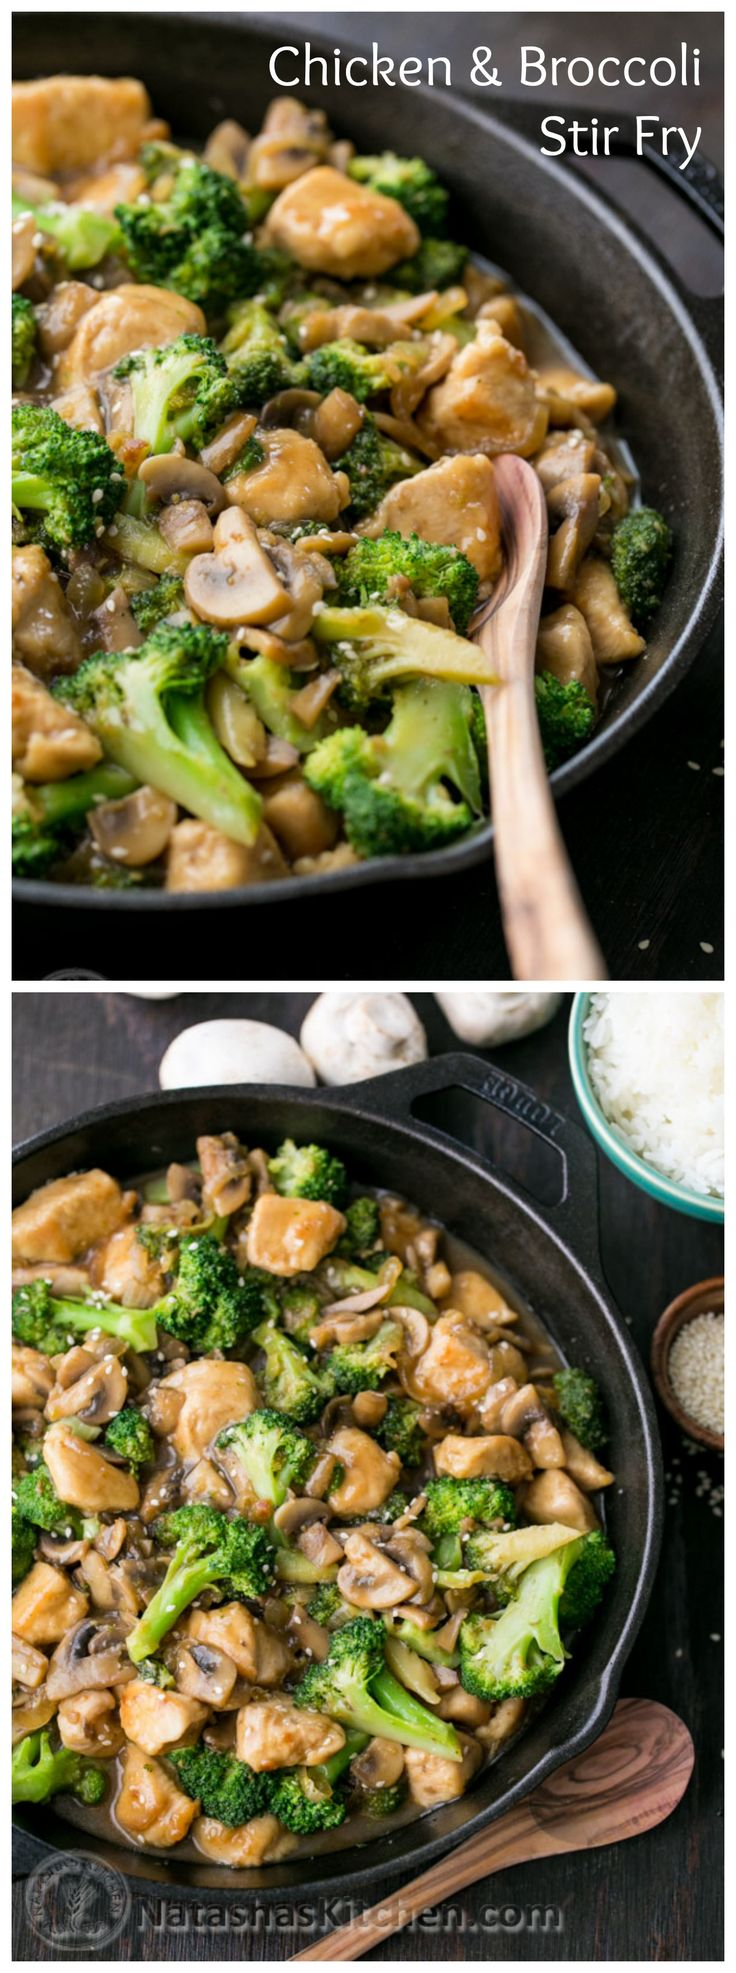 This chicken and broccoli stir fry is so tasty and much healthier than takeout! Use gluten free flour and tamari sauce { gluten free recipes, dinner ideas }